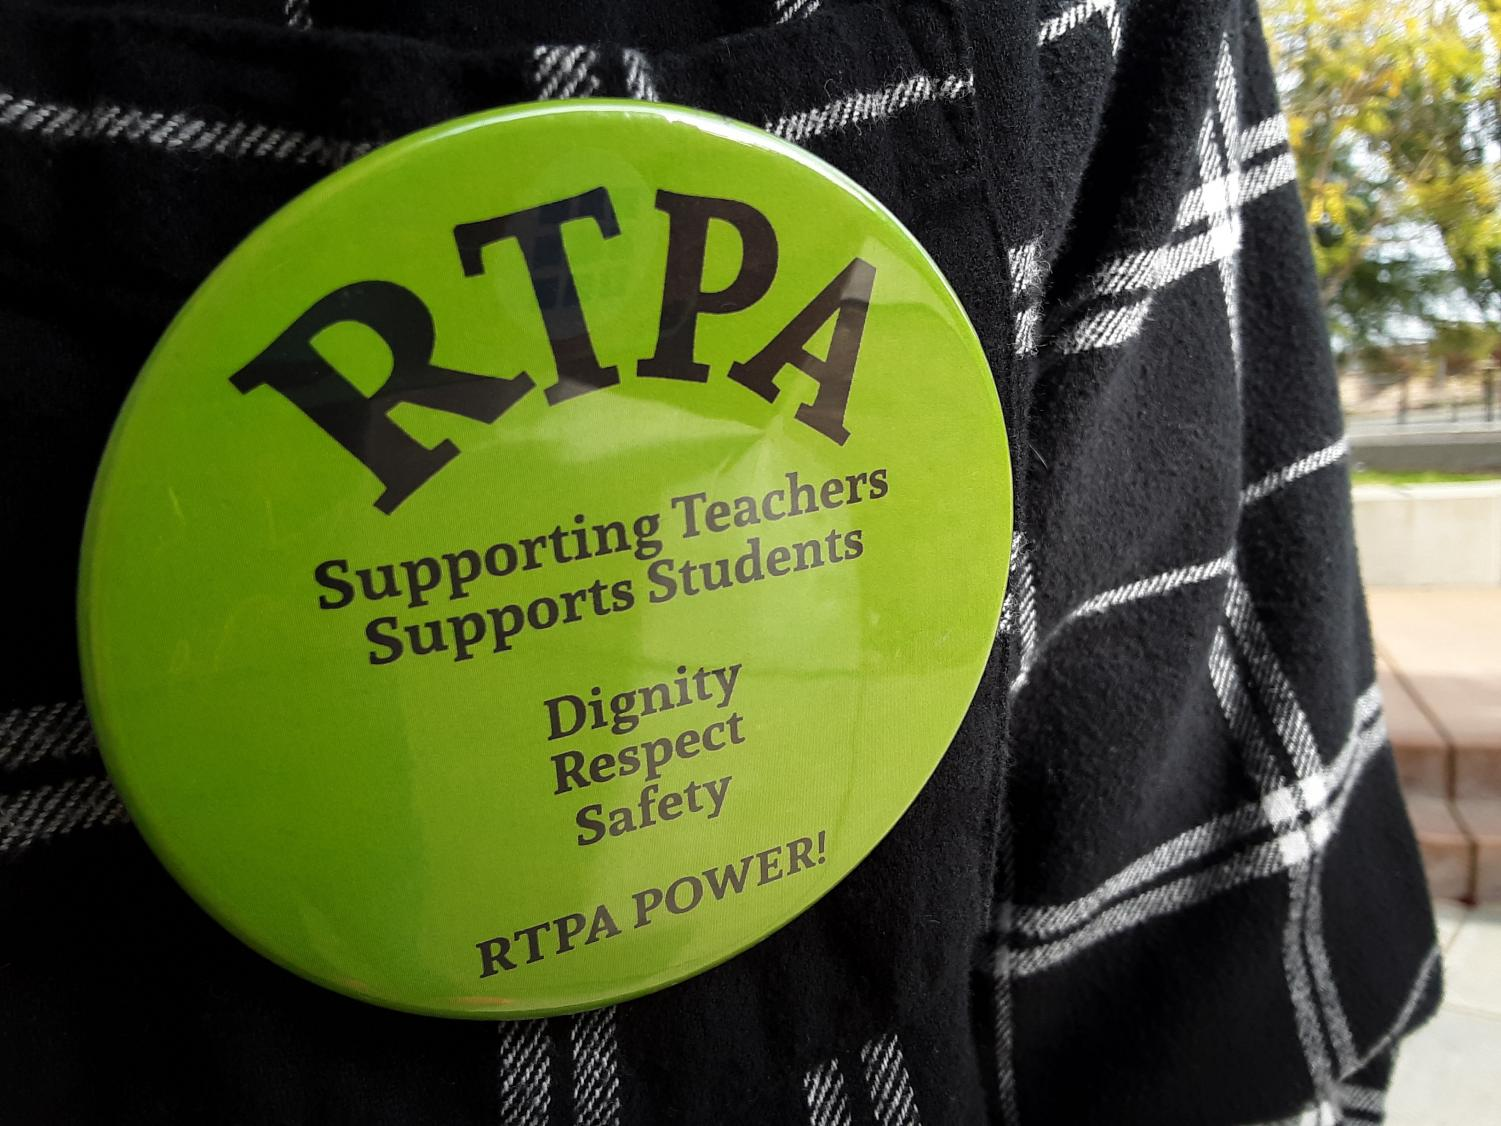 Union members continue to wear green RTPA buttons and pins to show support for their interests in the bargaining process. Photo by Alaina Roberts.